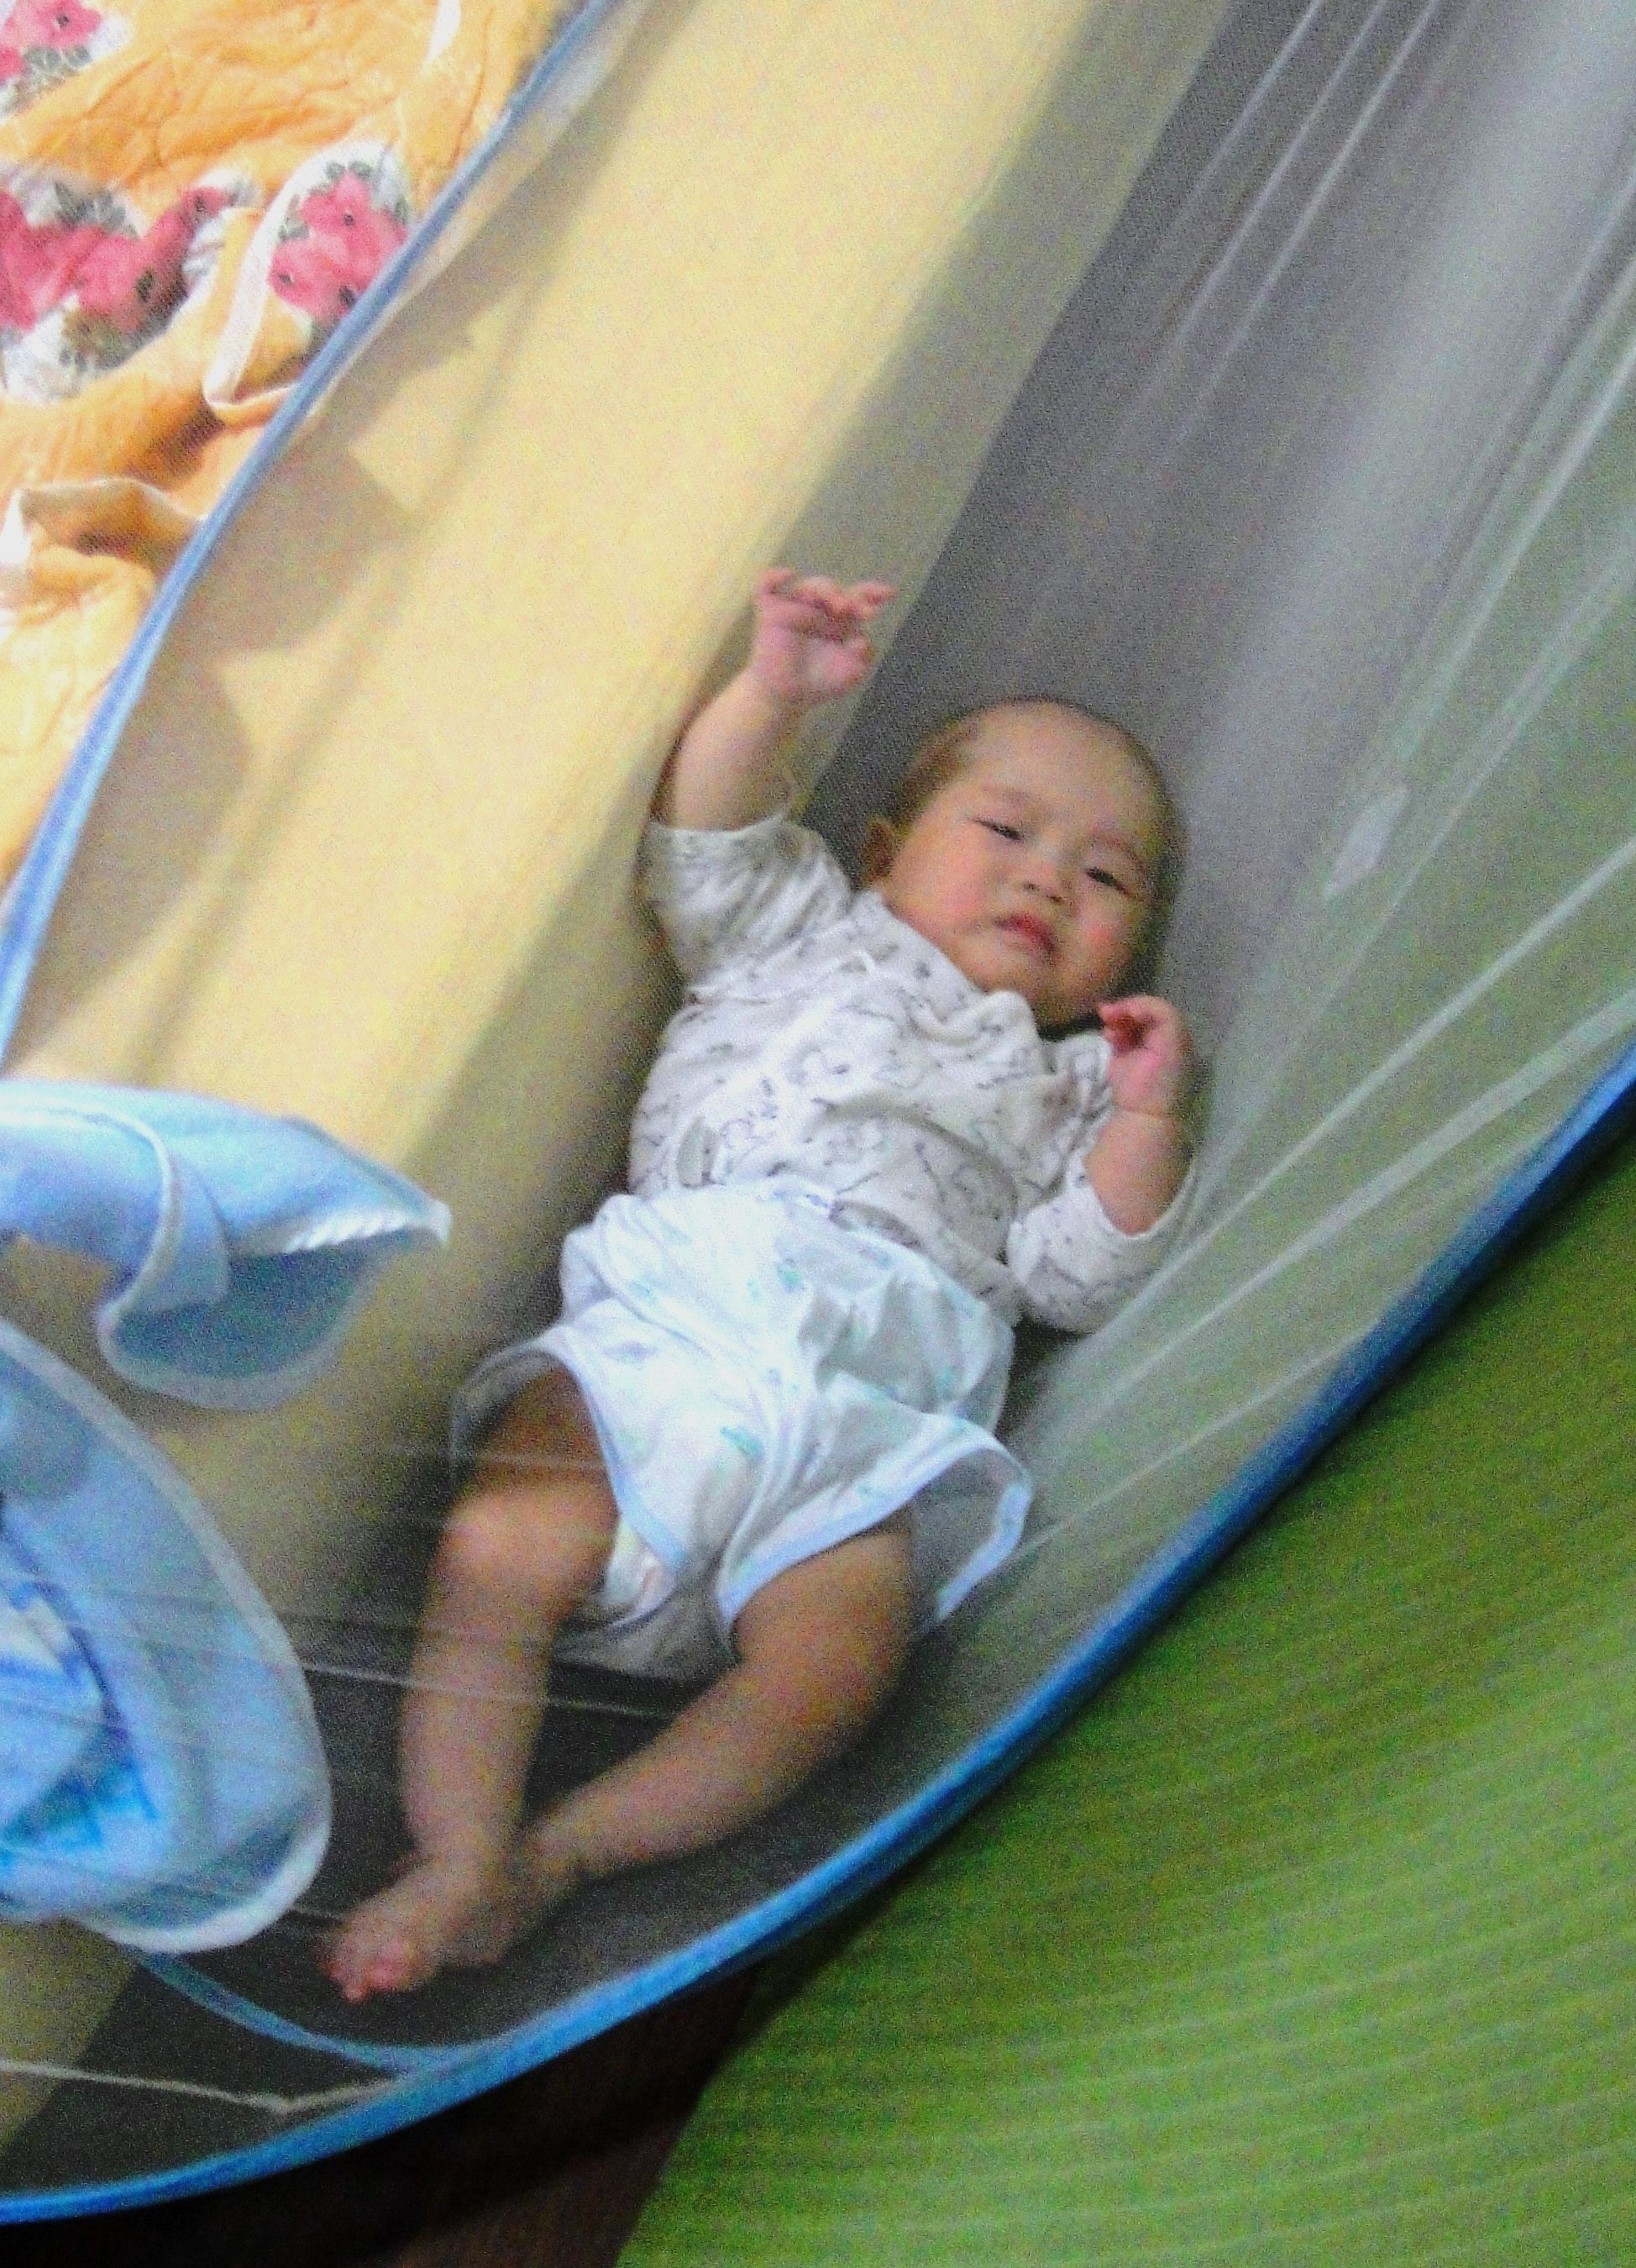 Baby Falling Off The Bed And In The Net Bed